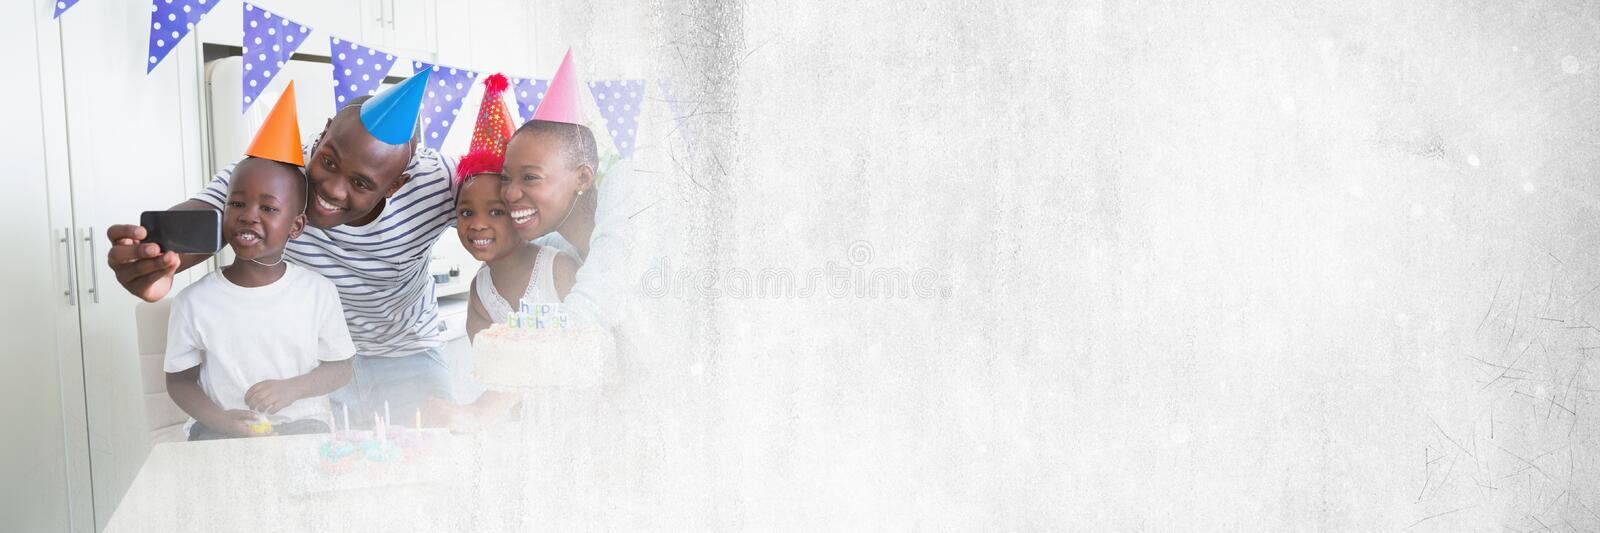 Family having fun birthday celebration party with transition royalty free stock photos